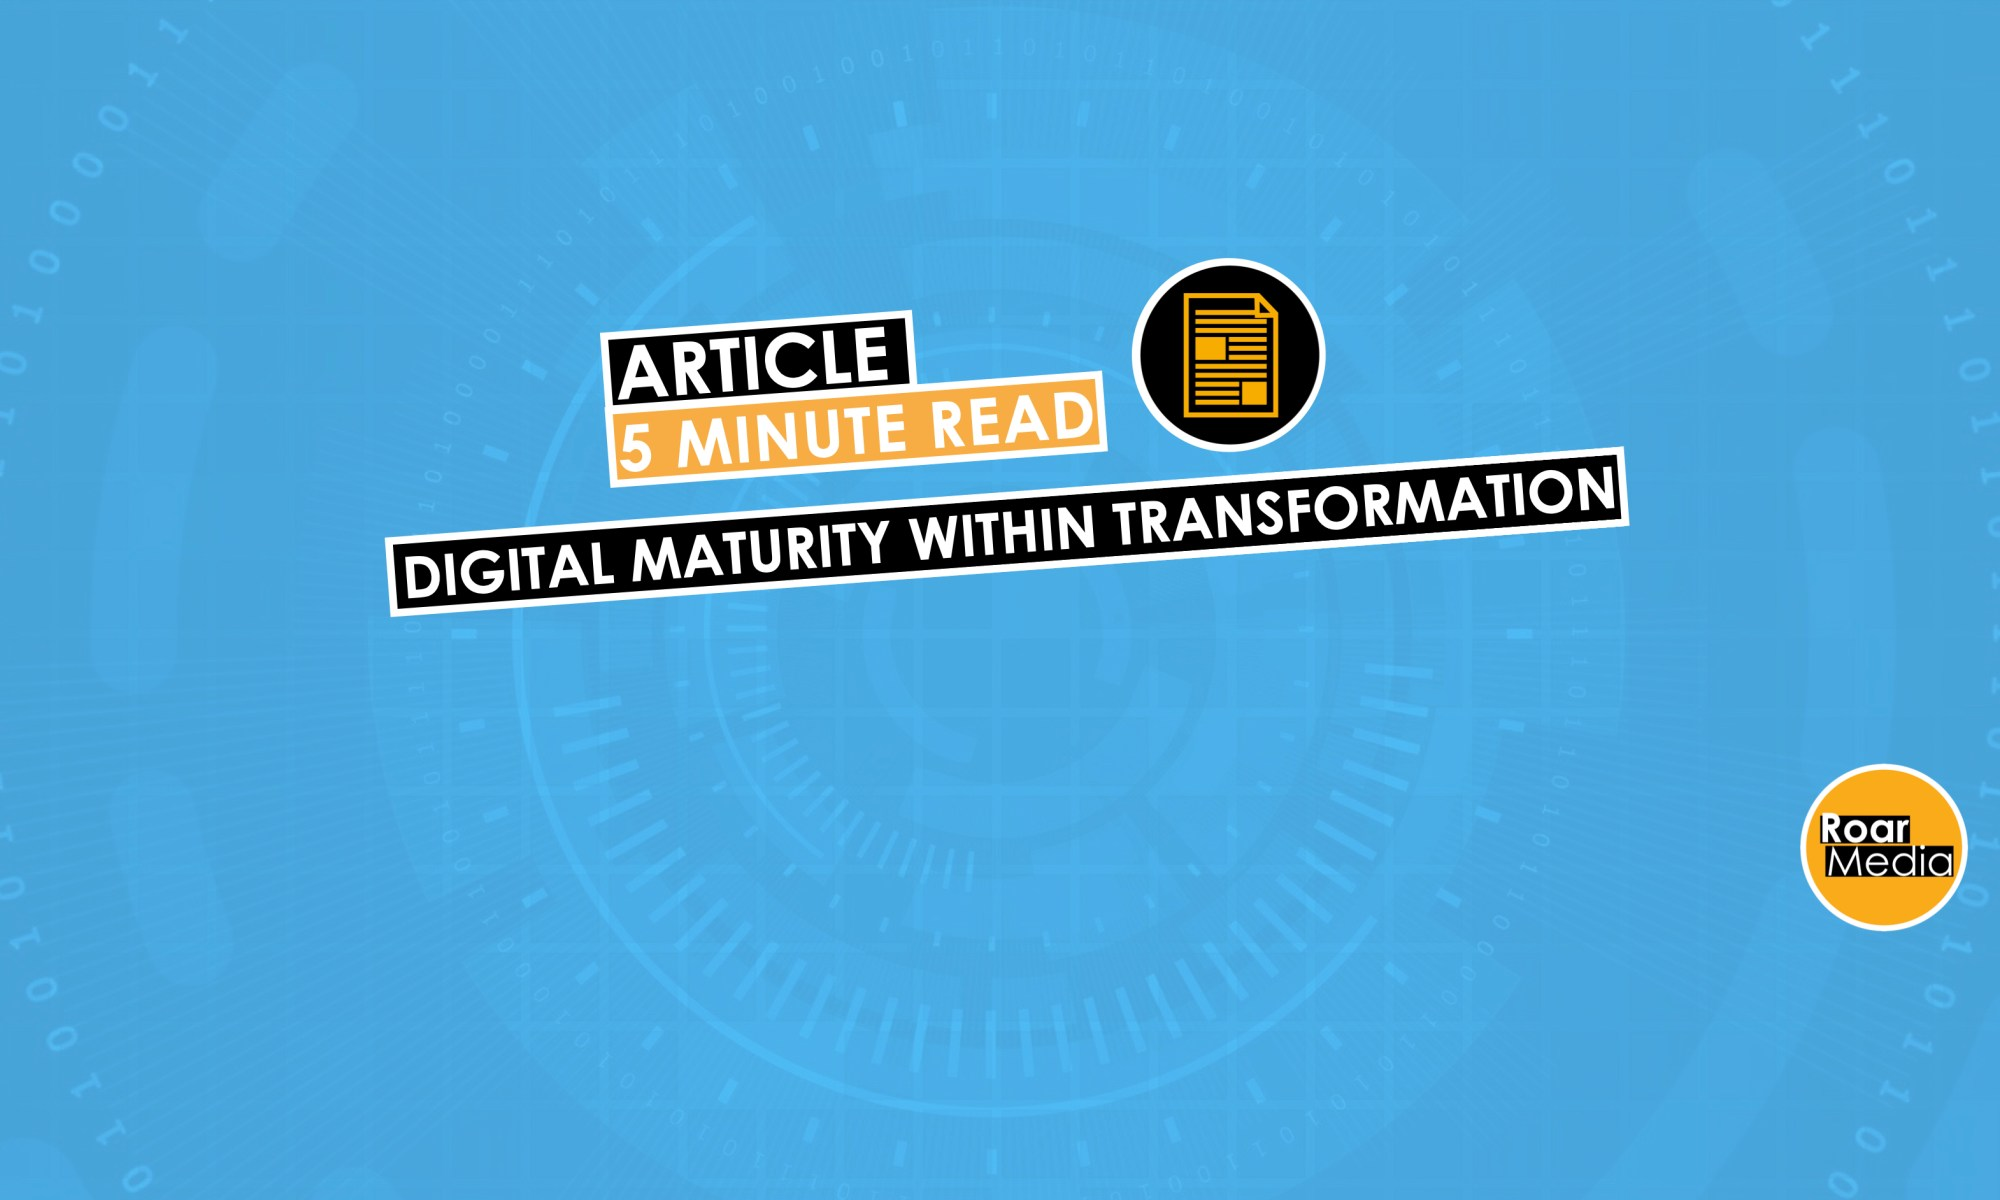 Digital maturity as a key to successful Digital Transformation